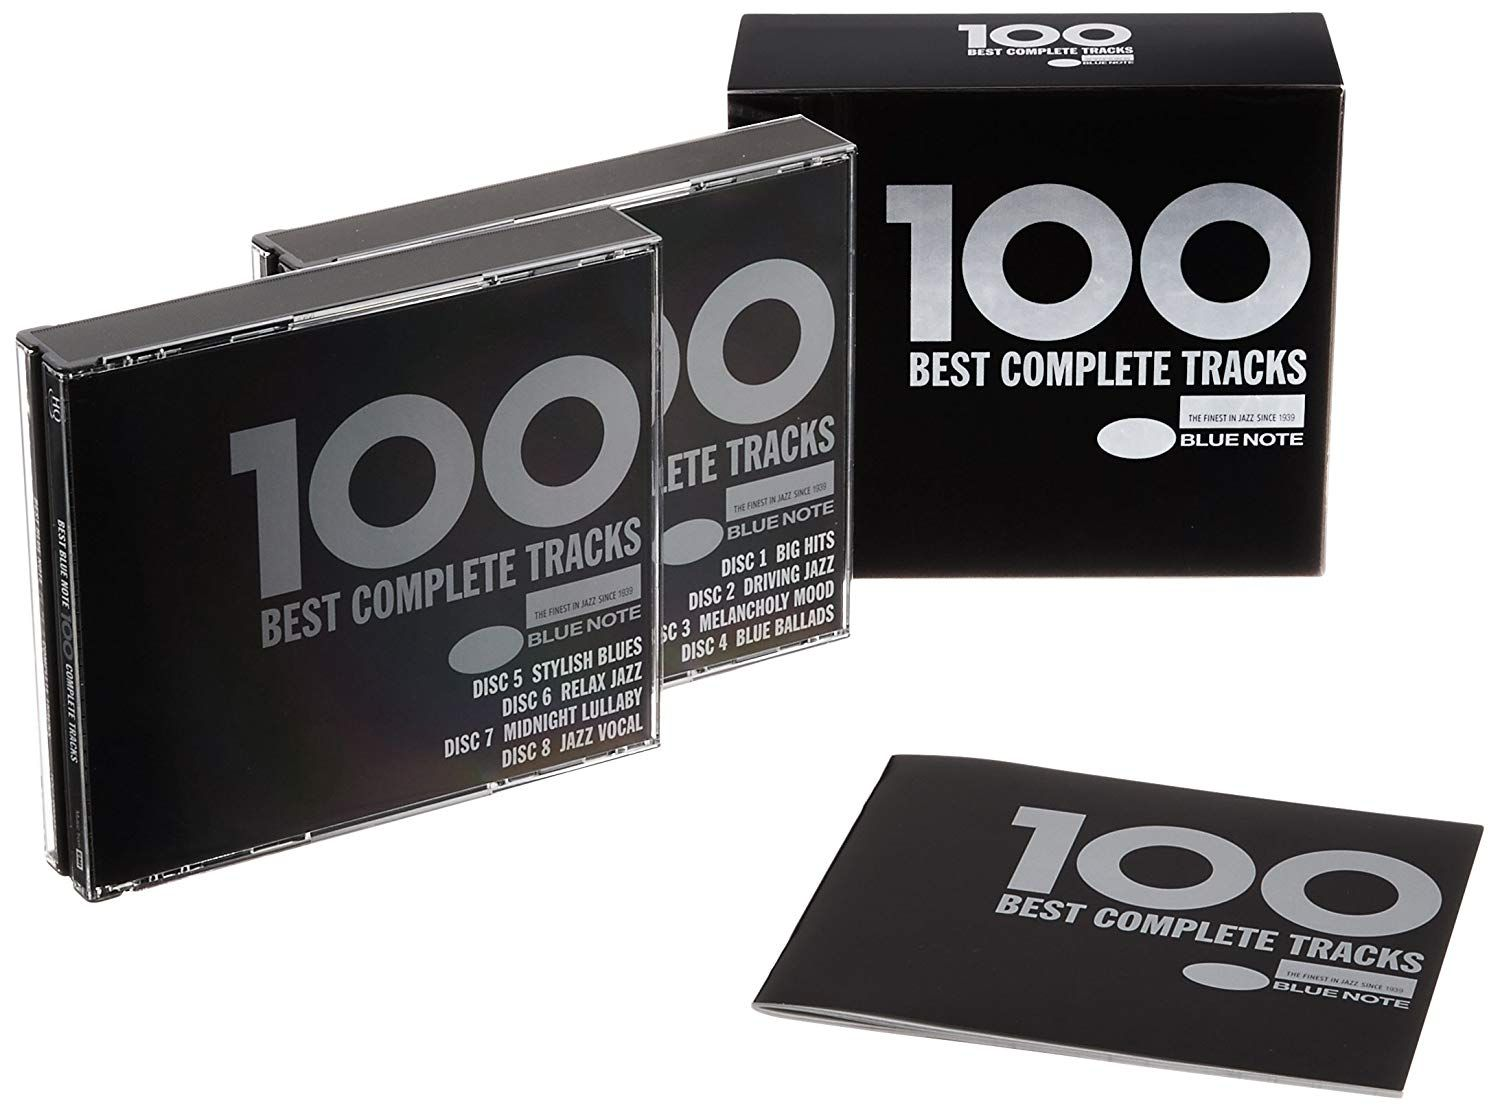 100 Best Complete Tracks Notes Company Logo The 100